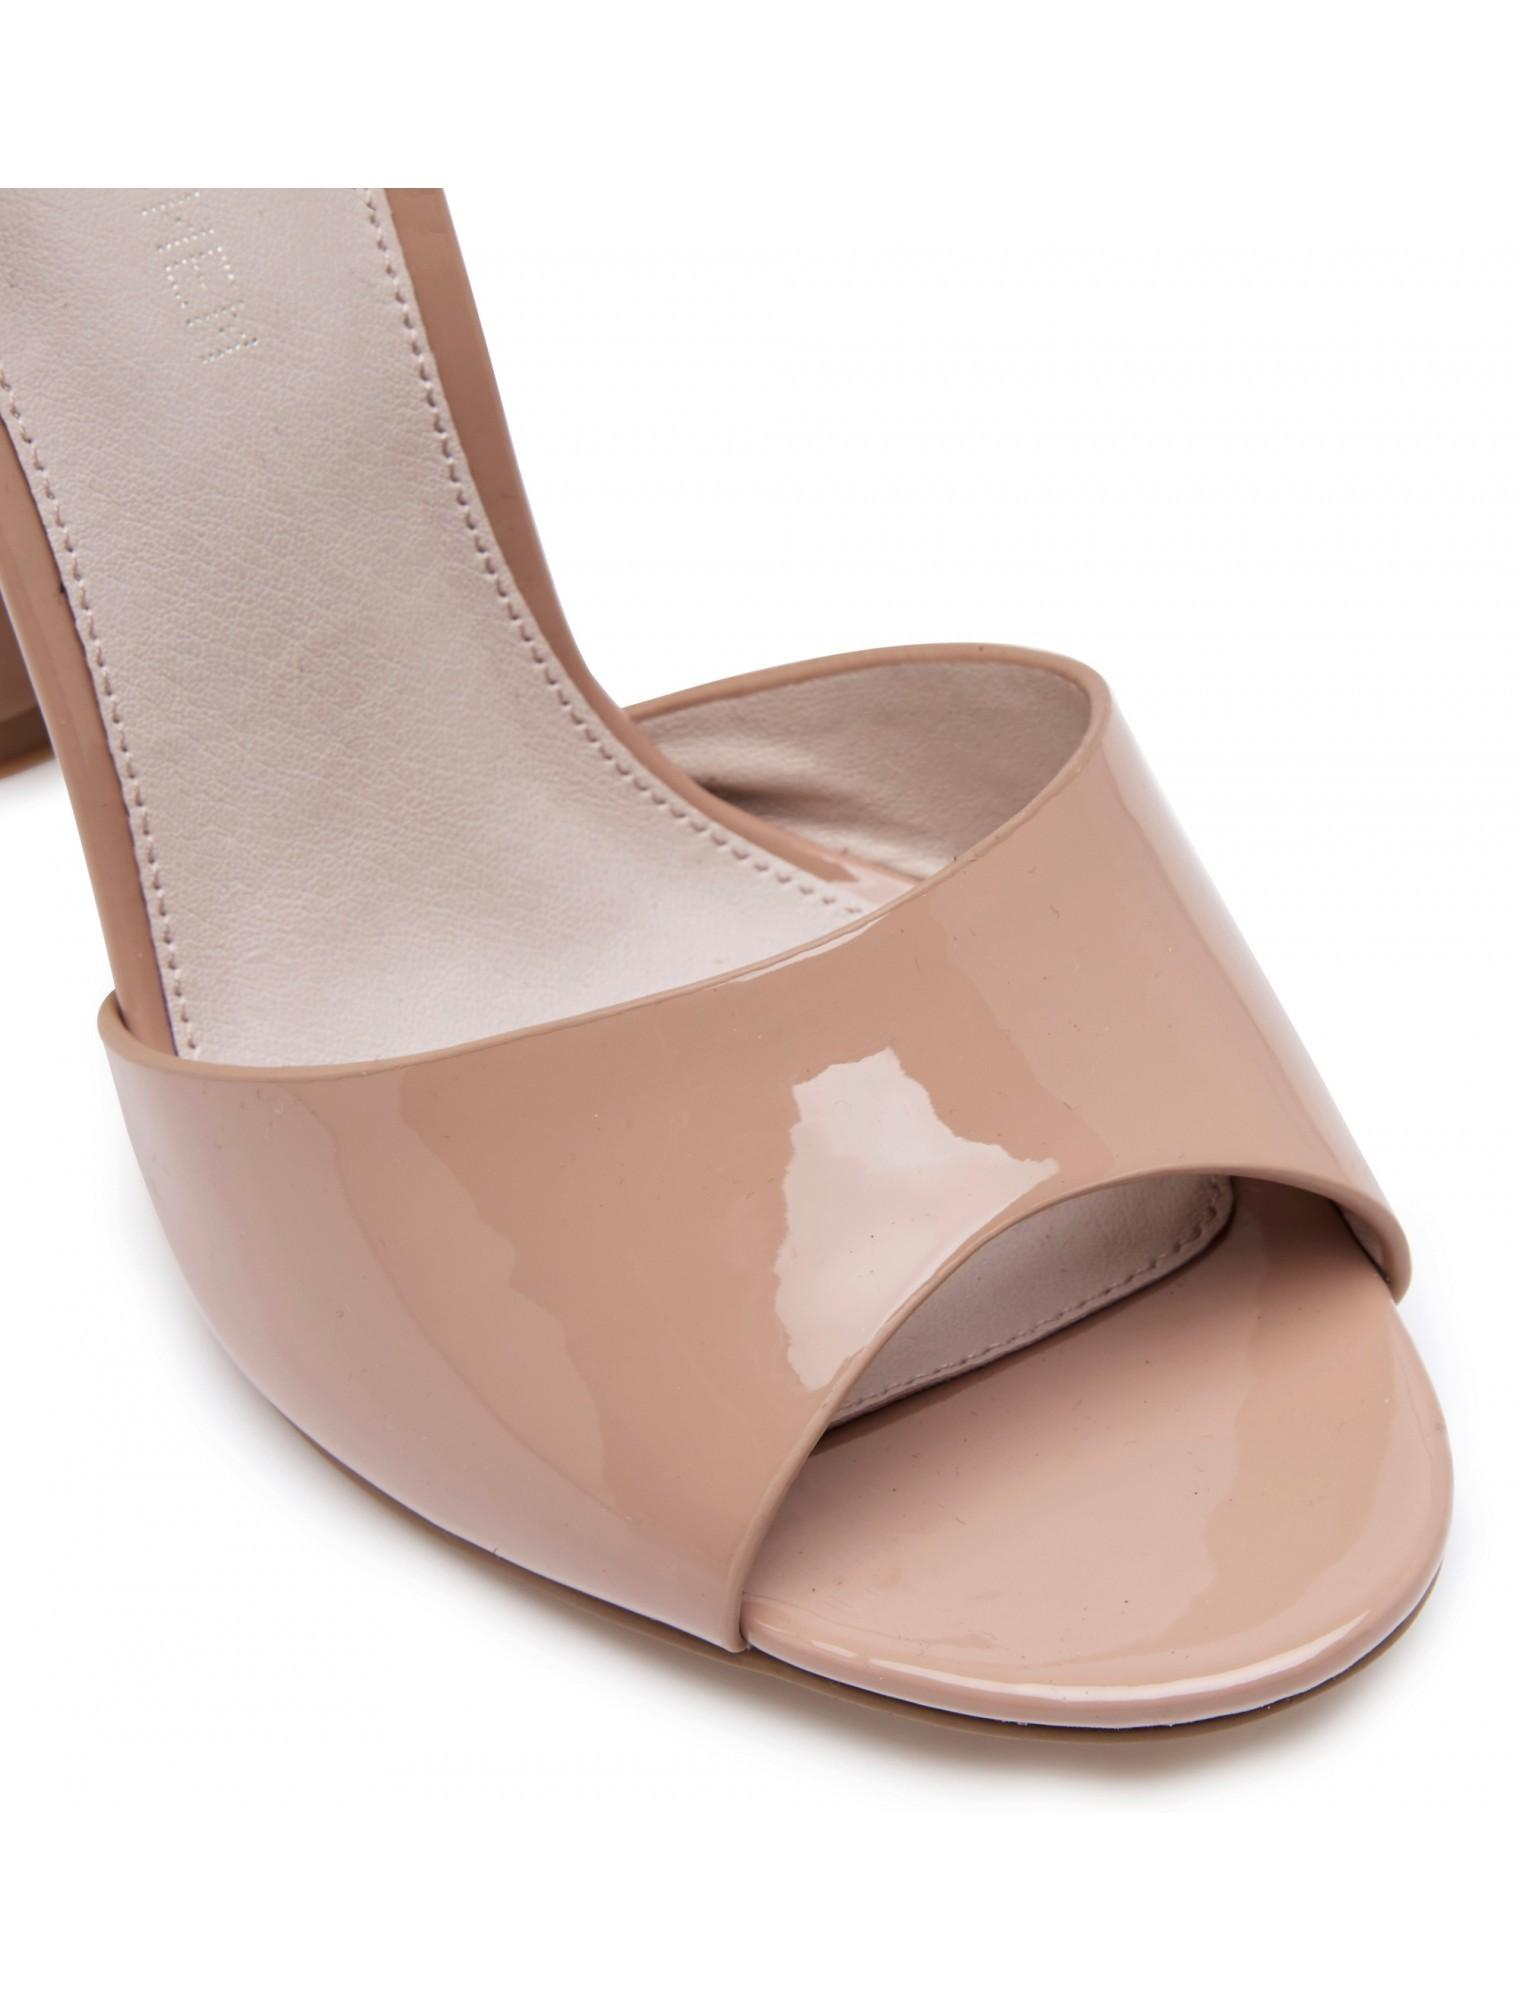 Origami Bow Block Heels Nude Womens Fashion Forever New